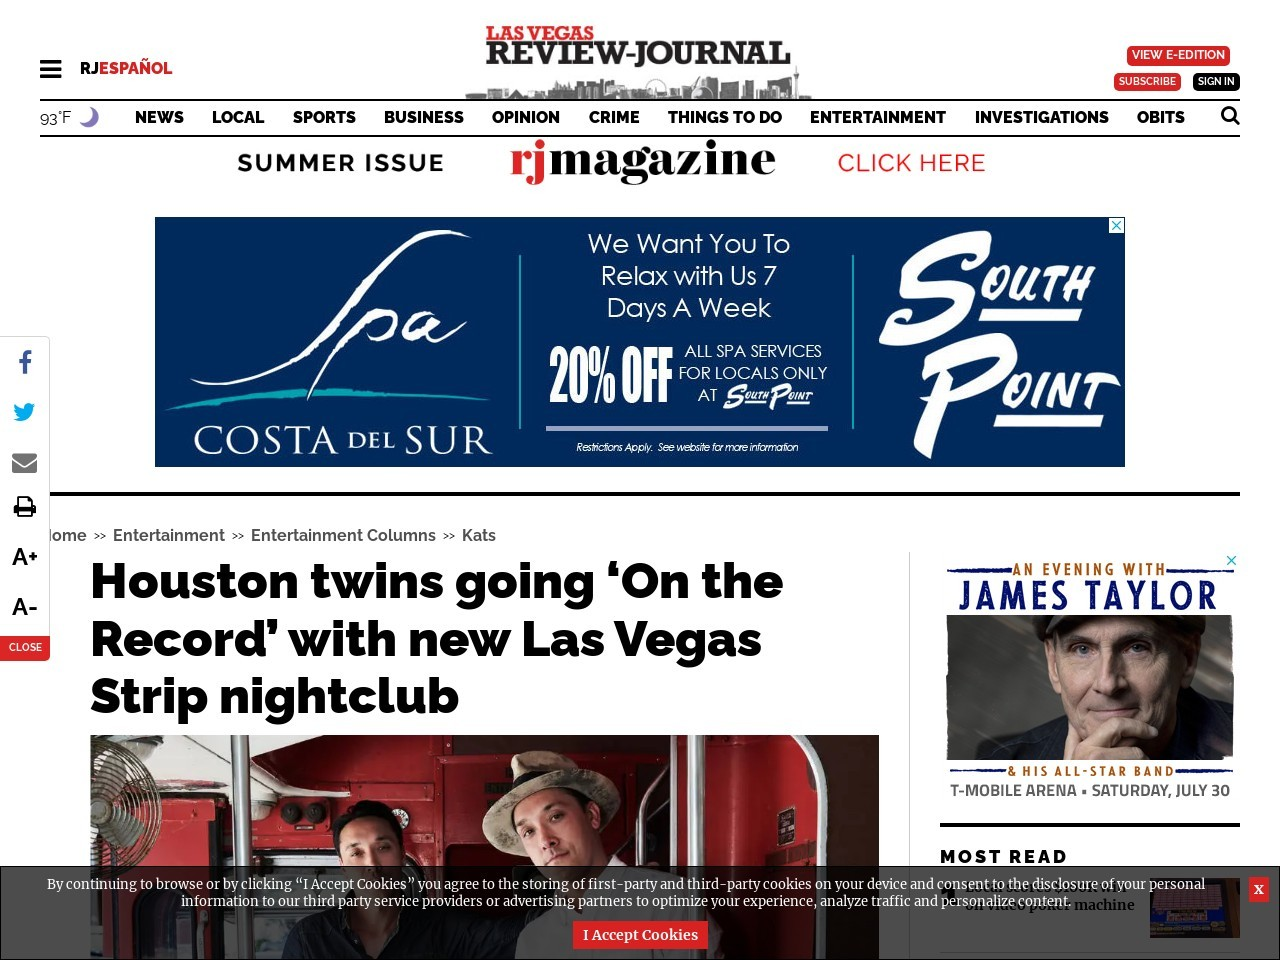 Houston twins going 'On the Record' with new Las Vegas Strip nightclub